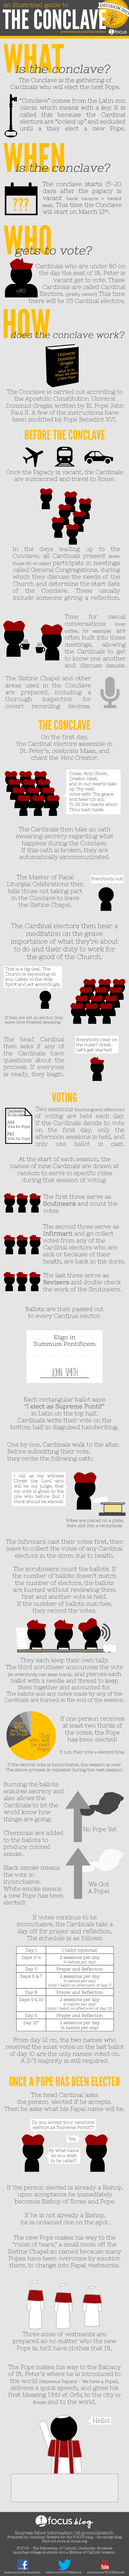 An Illustrated Guide to the Conclave -- a cool infographic from FOCUS (Fellowship of Catholic University Students)